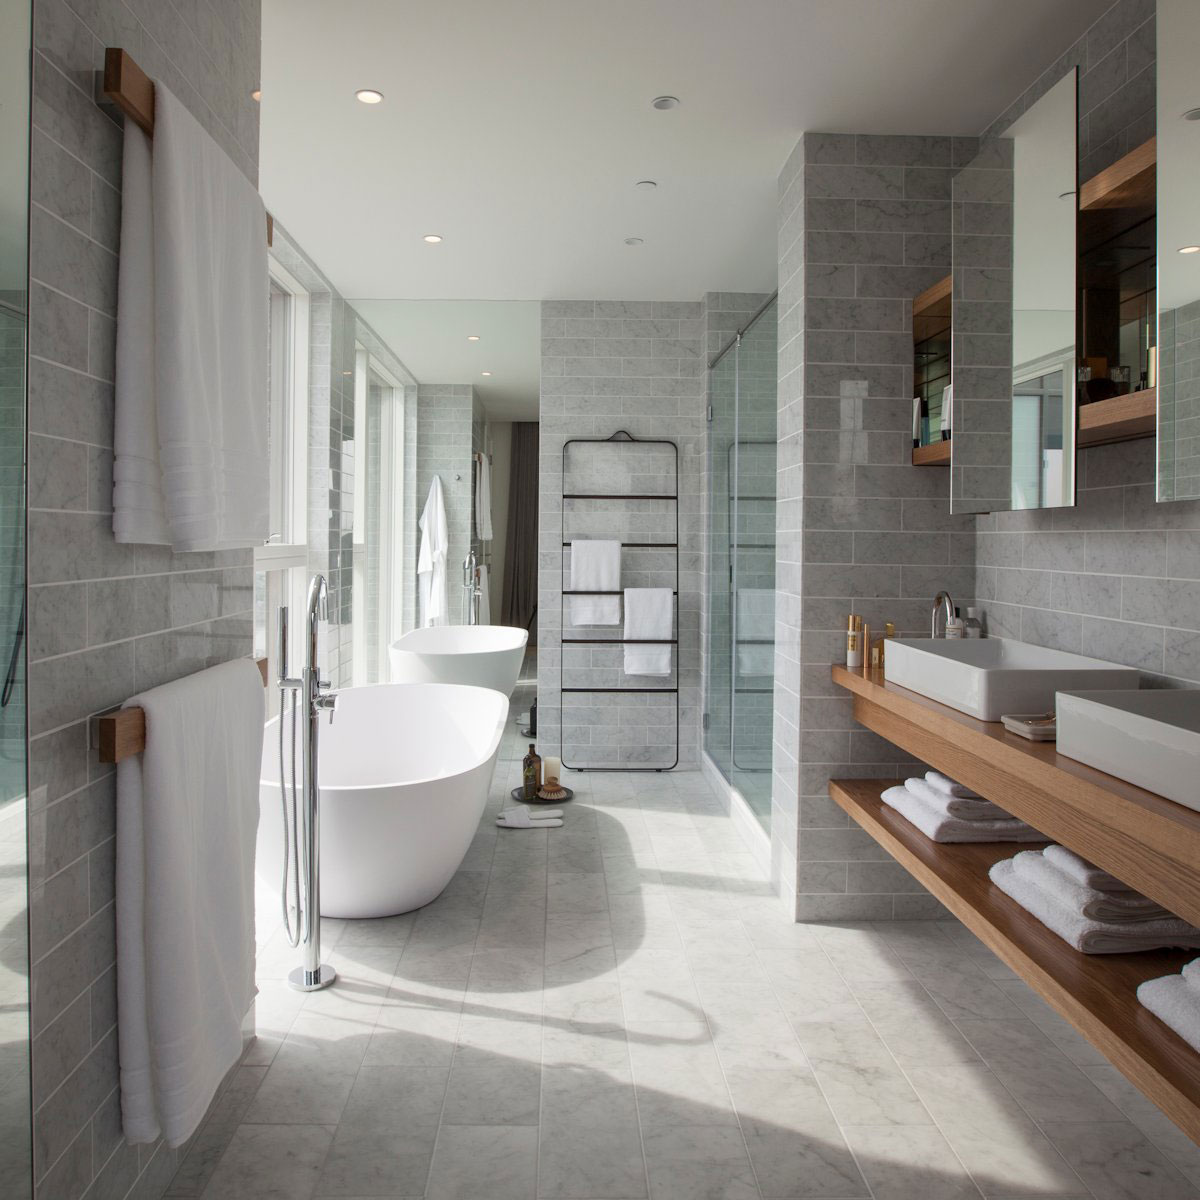 Nice-bathroom-interior-design-worth seeing-12 Nice-bathroom-interior design-worth seeing